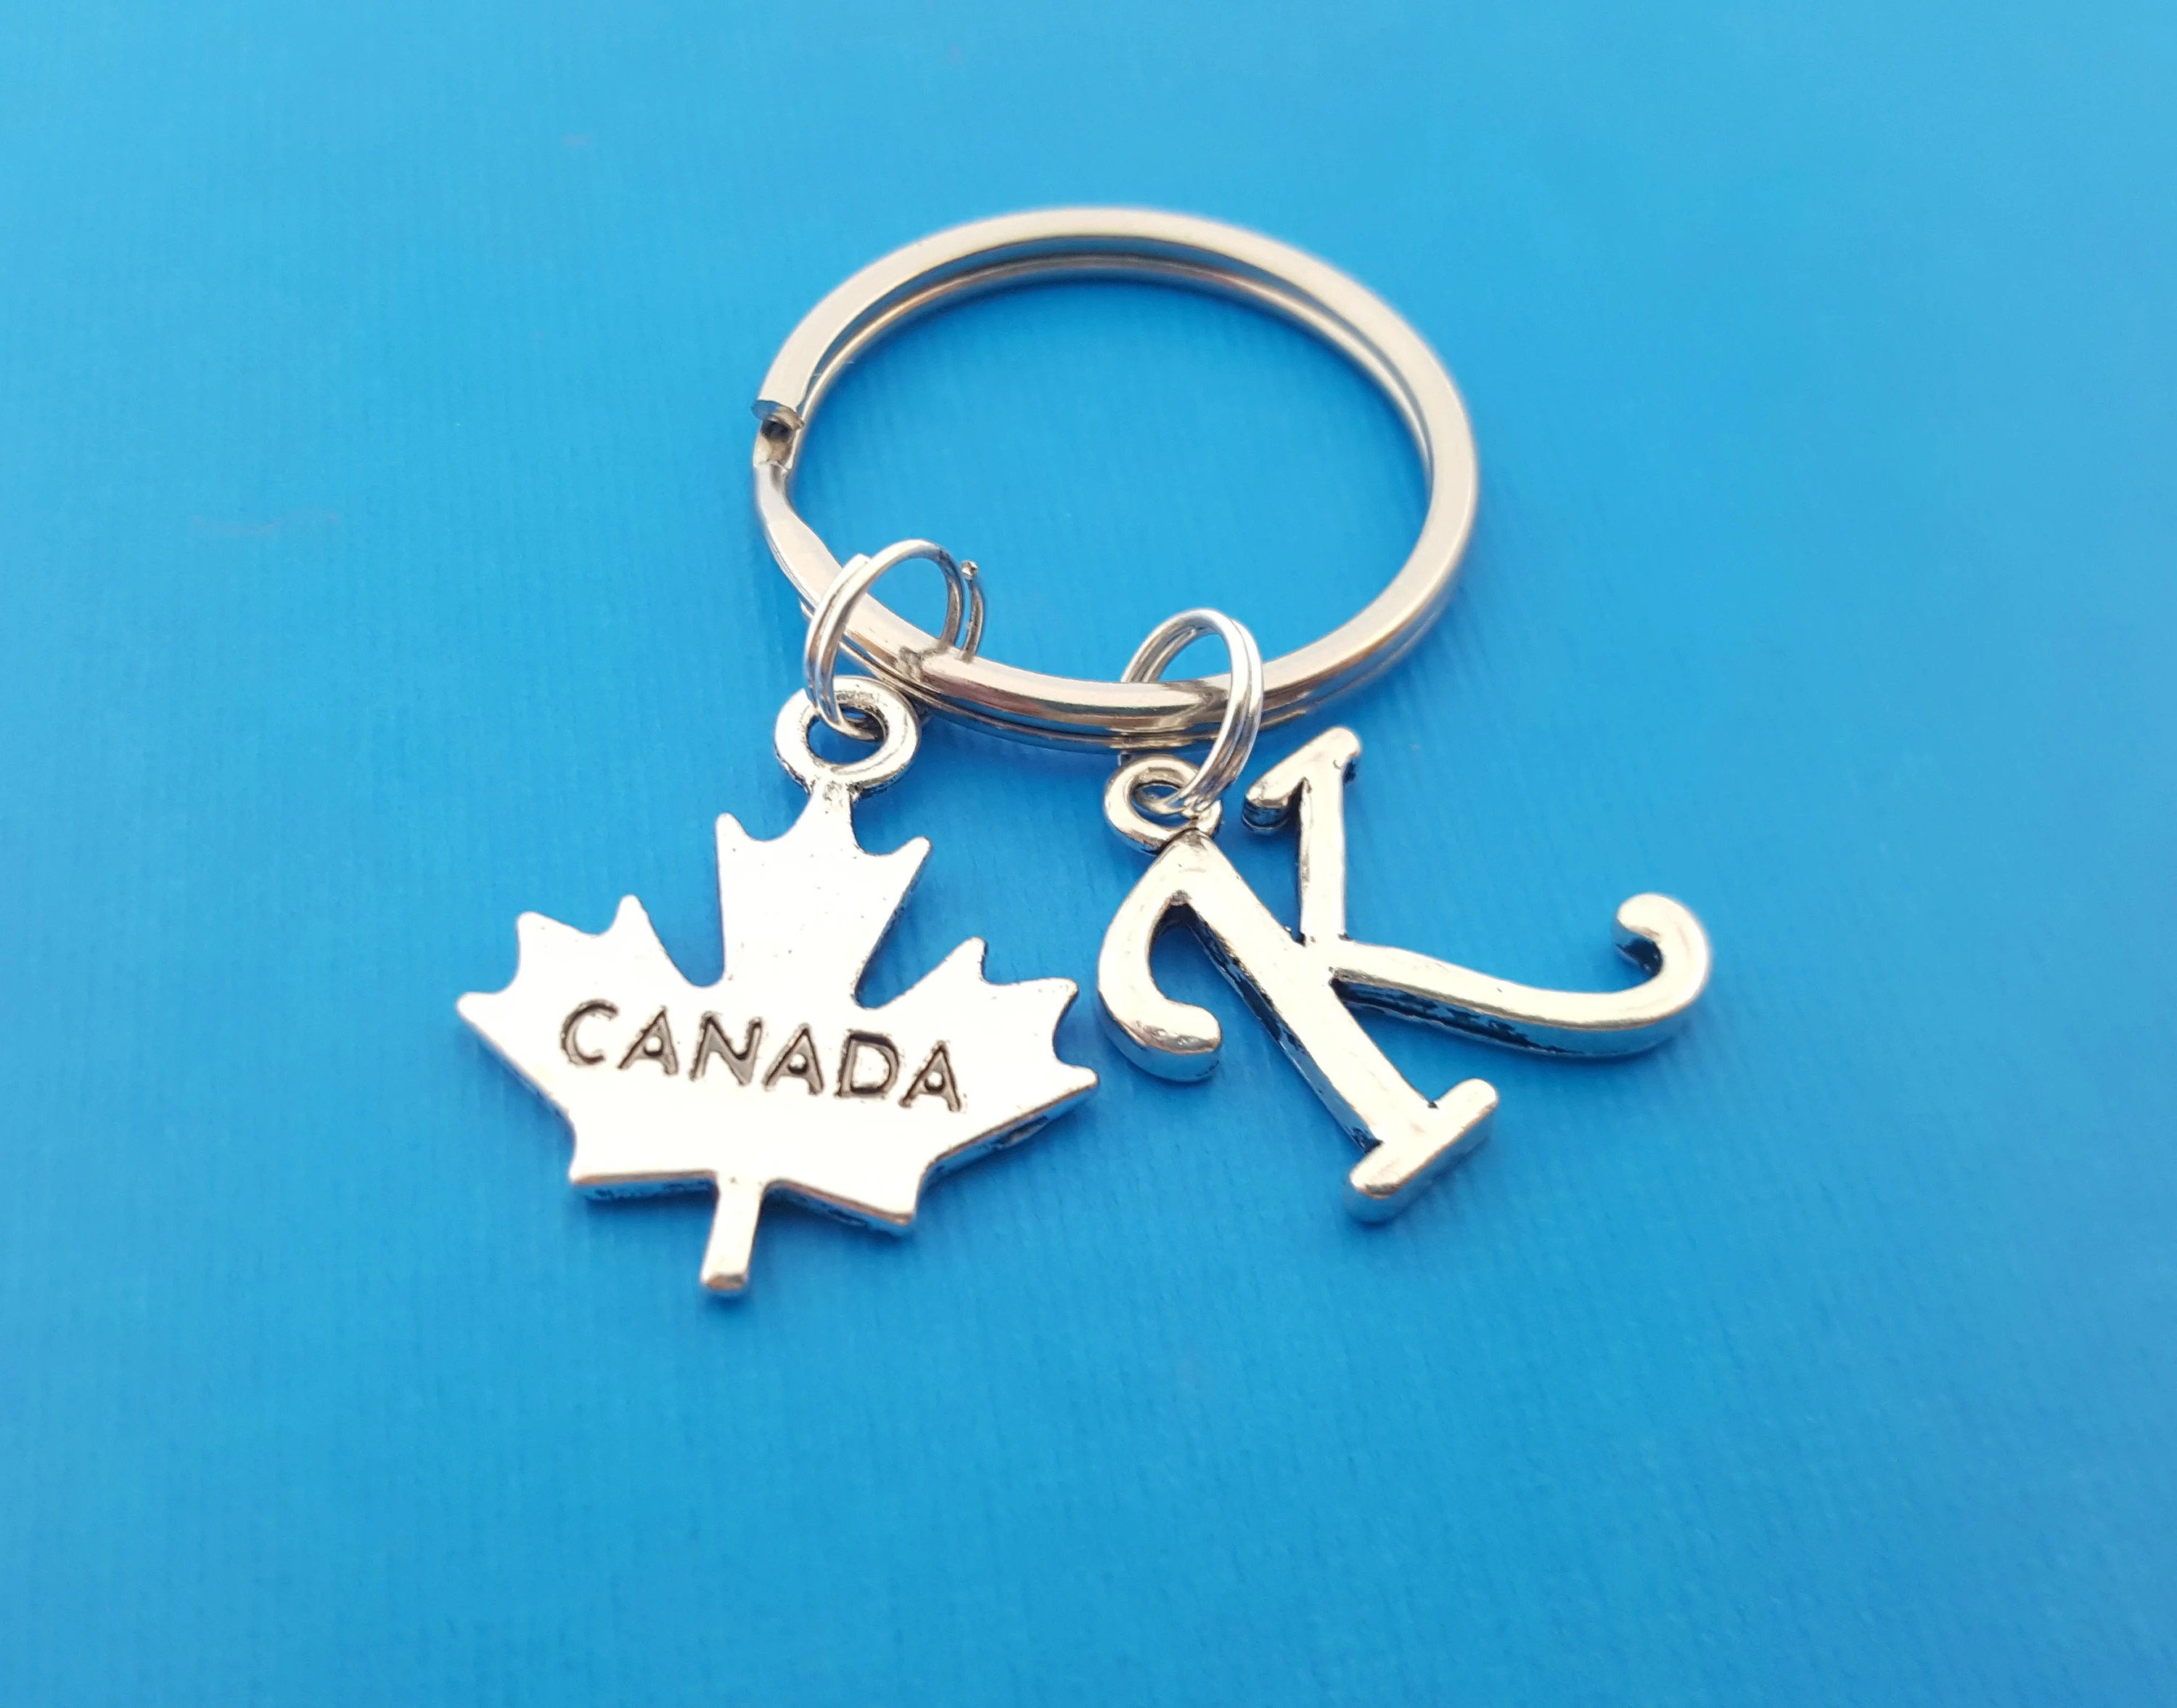 Key Rings Canada Canada Charm Personalized Key Chain Initial Key Chain Custom Key Chain Personalized Gift Gift For Him Her